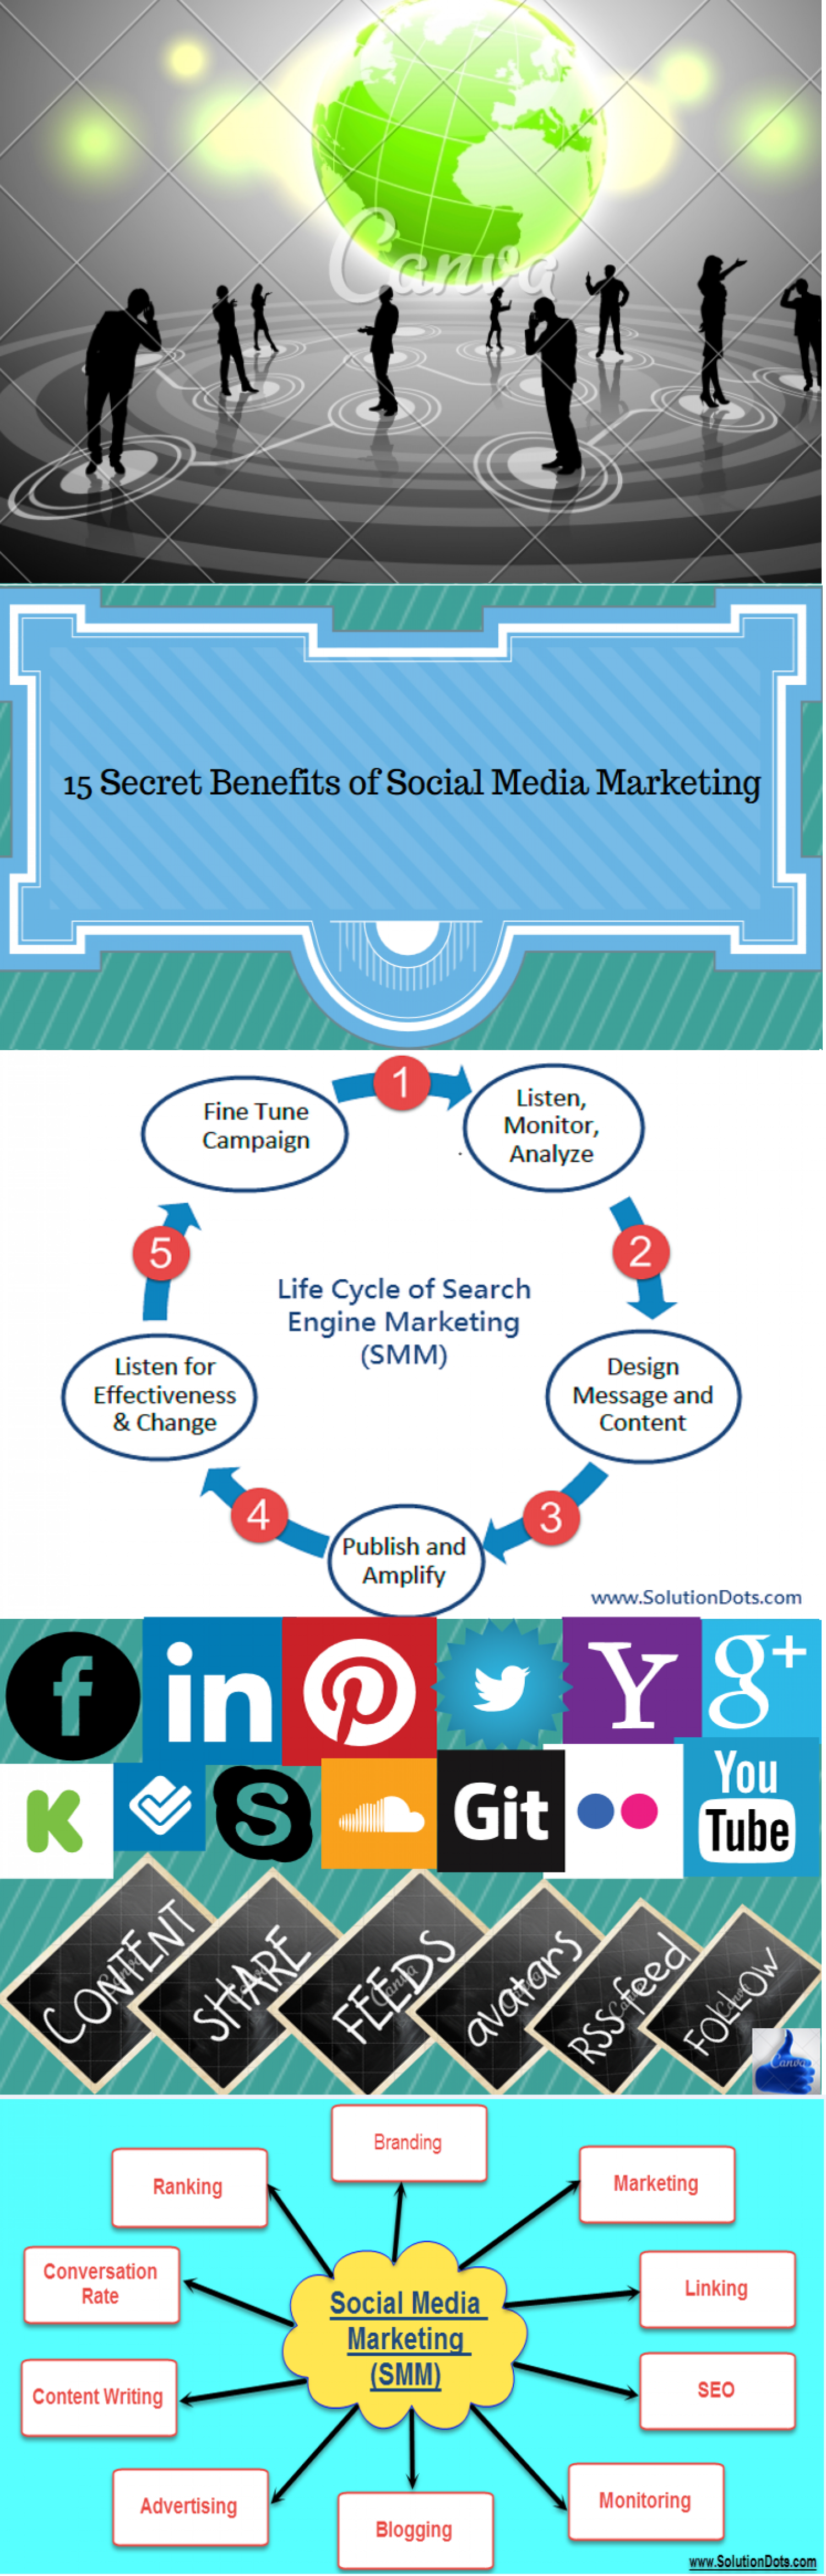 Top Secret Benefits of Social Media Marketing Infographic